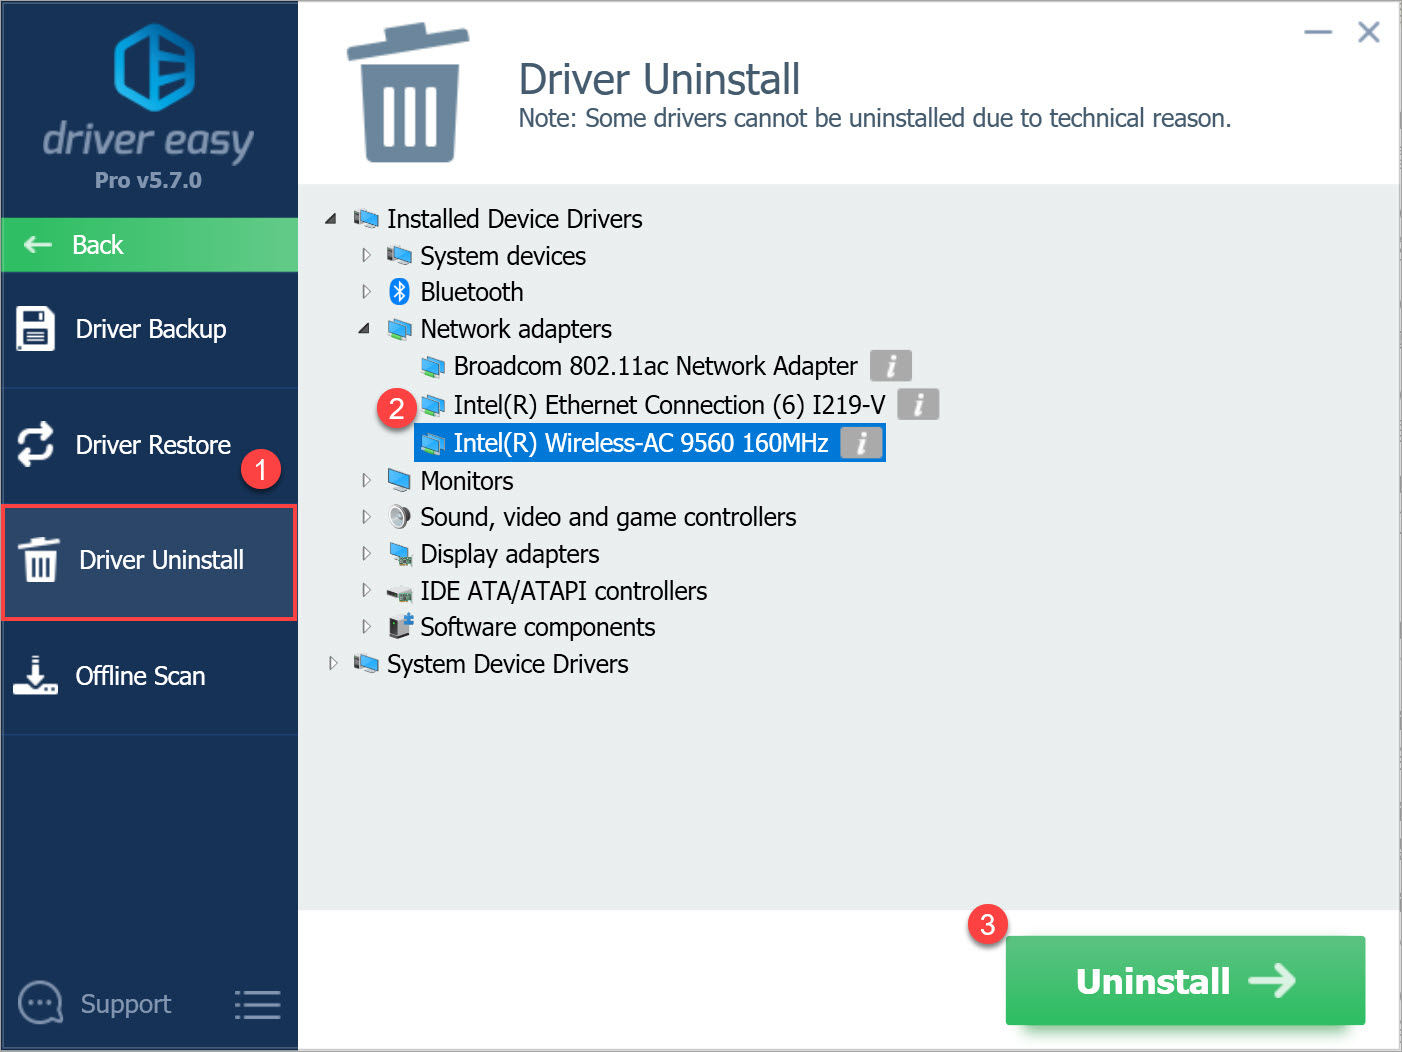 Driver Easy Pro Driver Uninstall